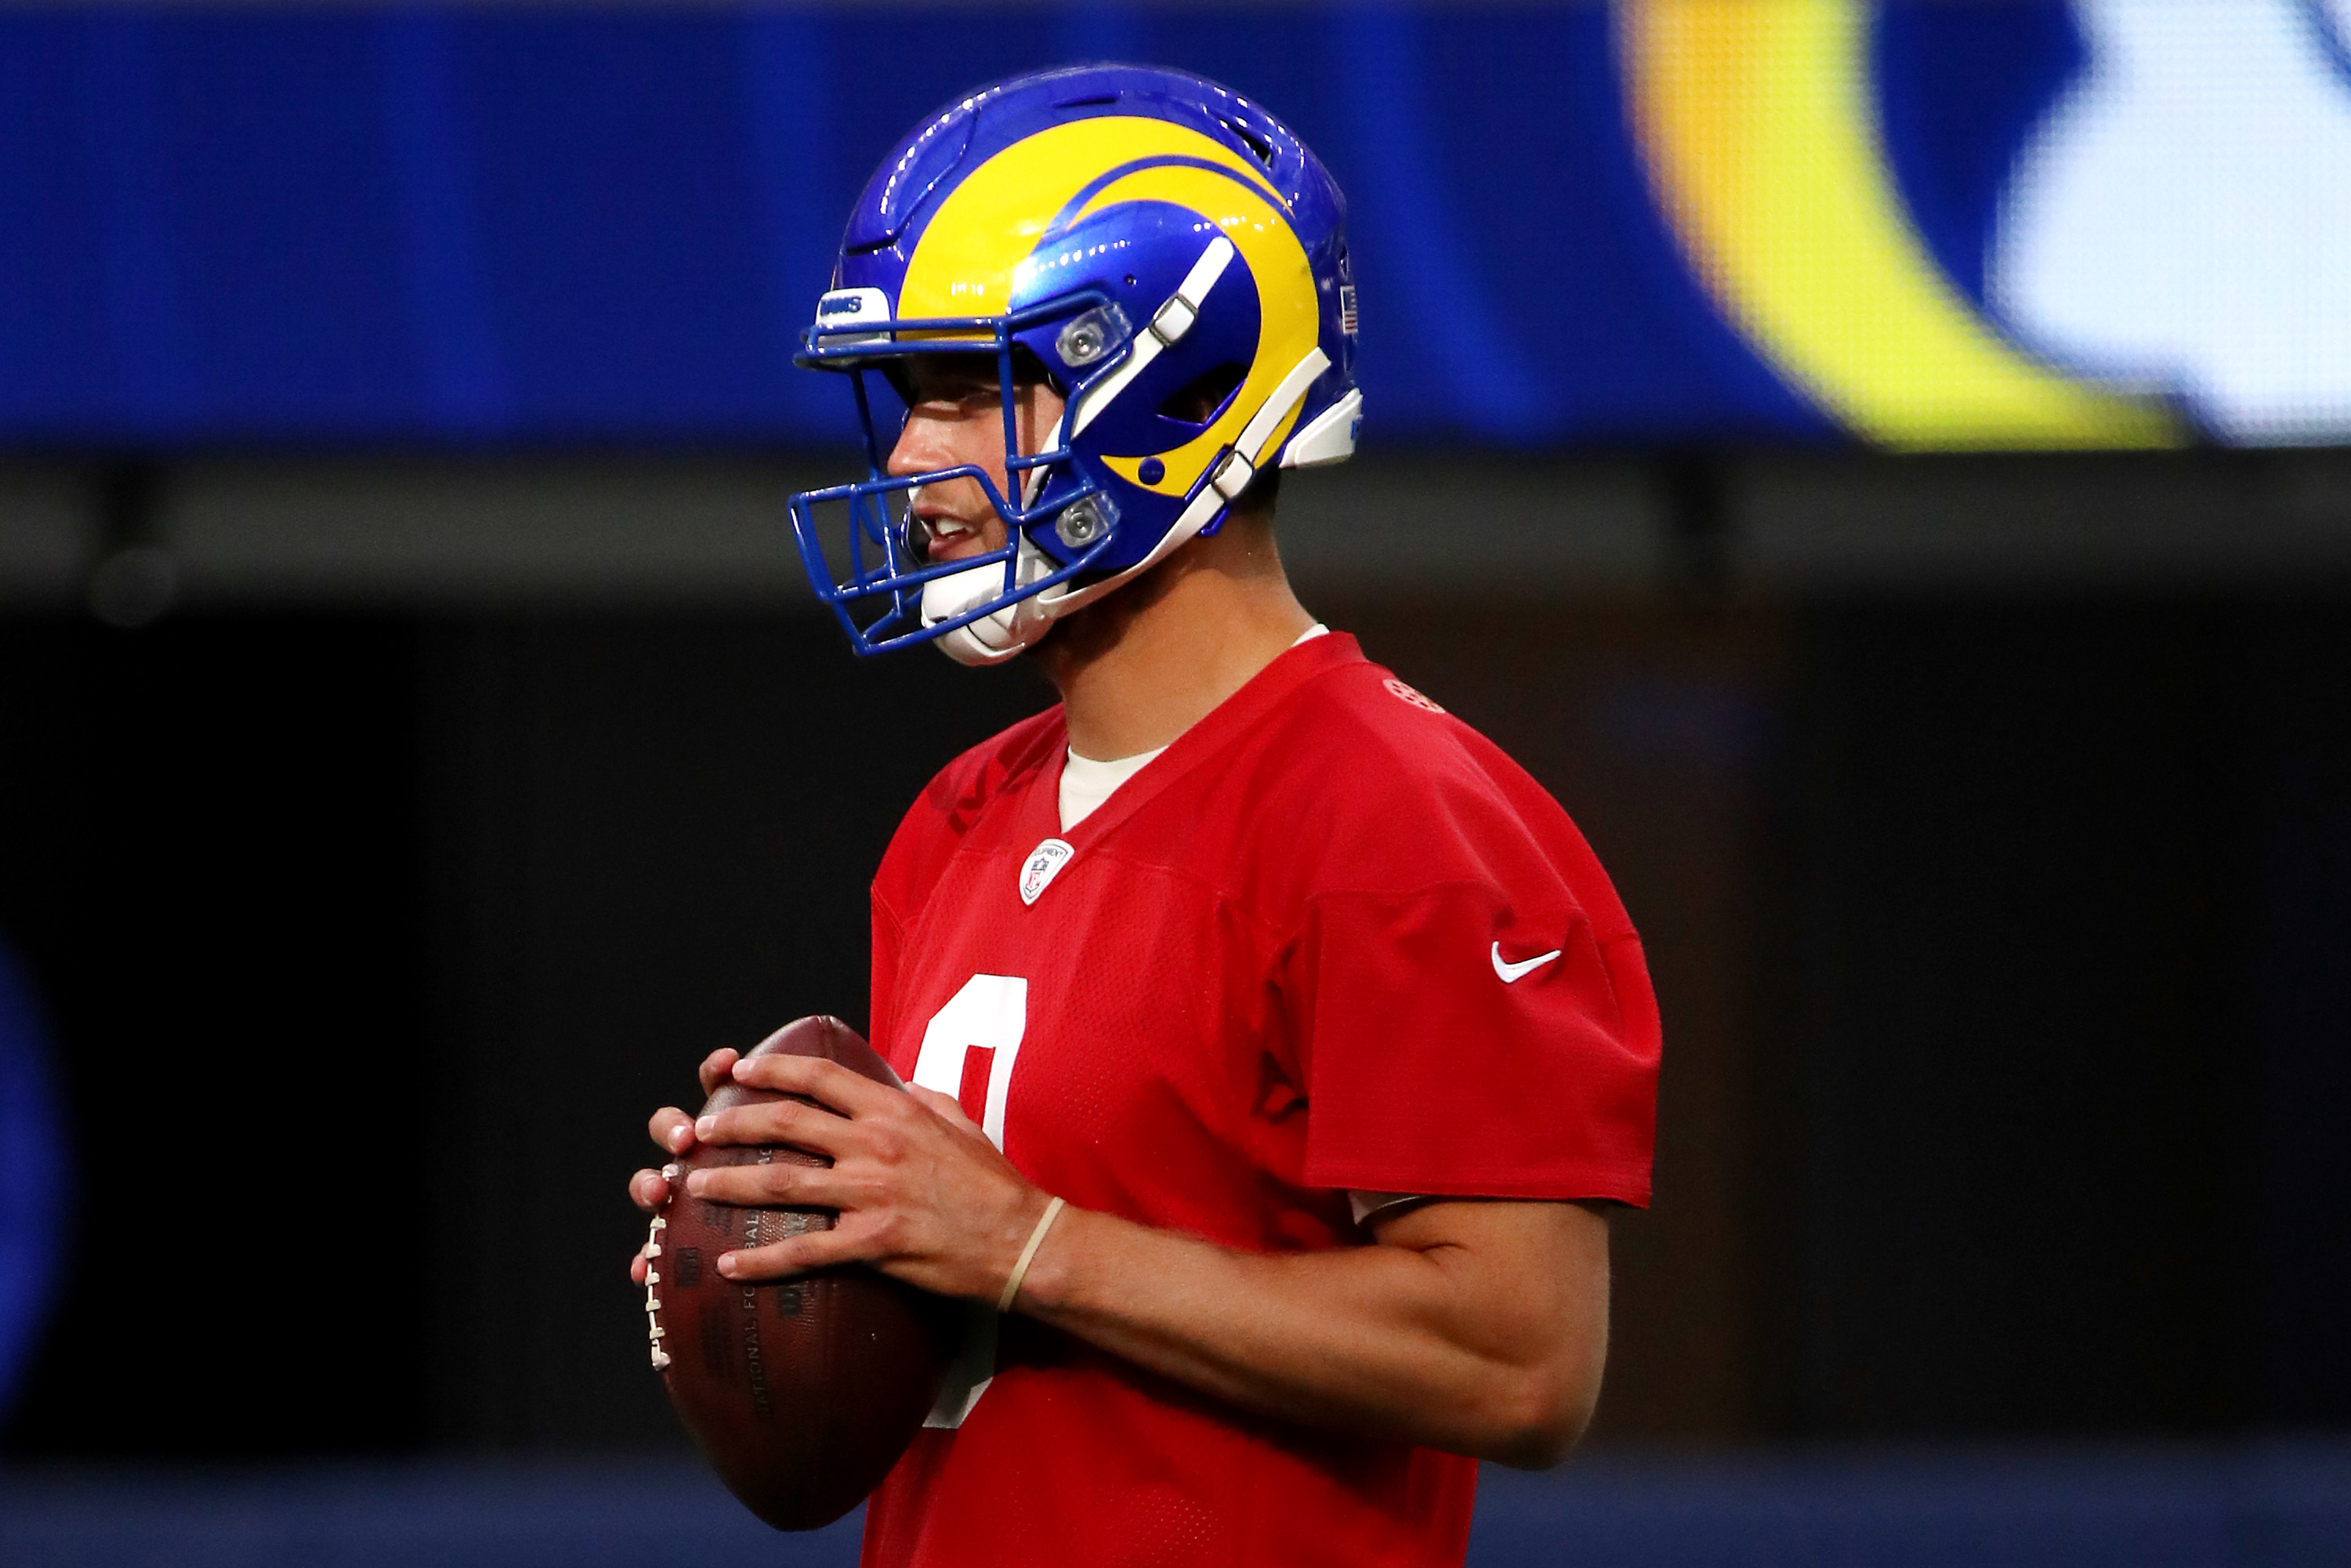 Matthew Stafford #9 of the Los Angeles Rams handles the ball during open practice at SoFi Stadium on June 10, 2021 in Inglewood, California.